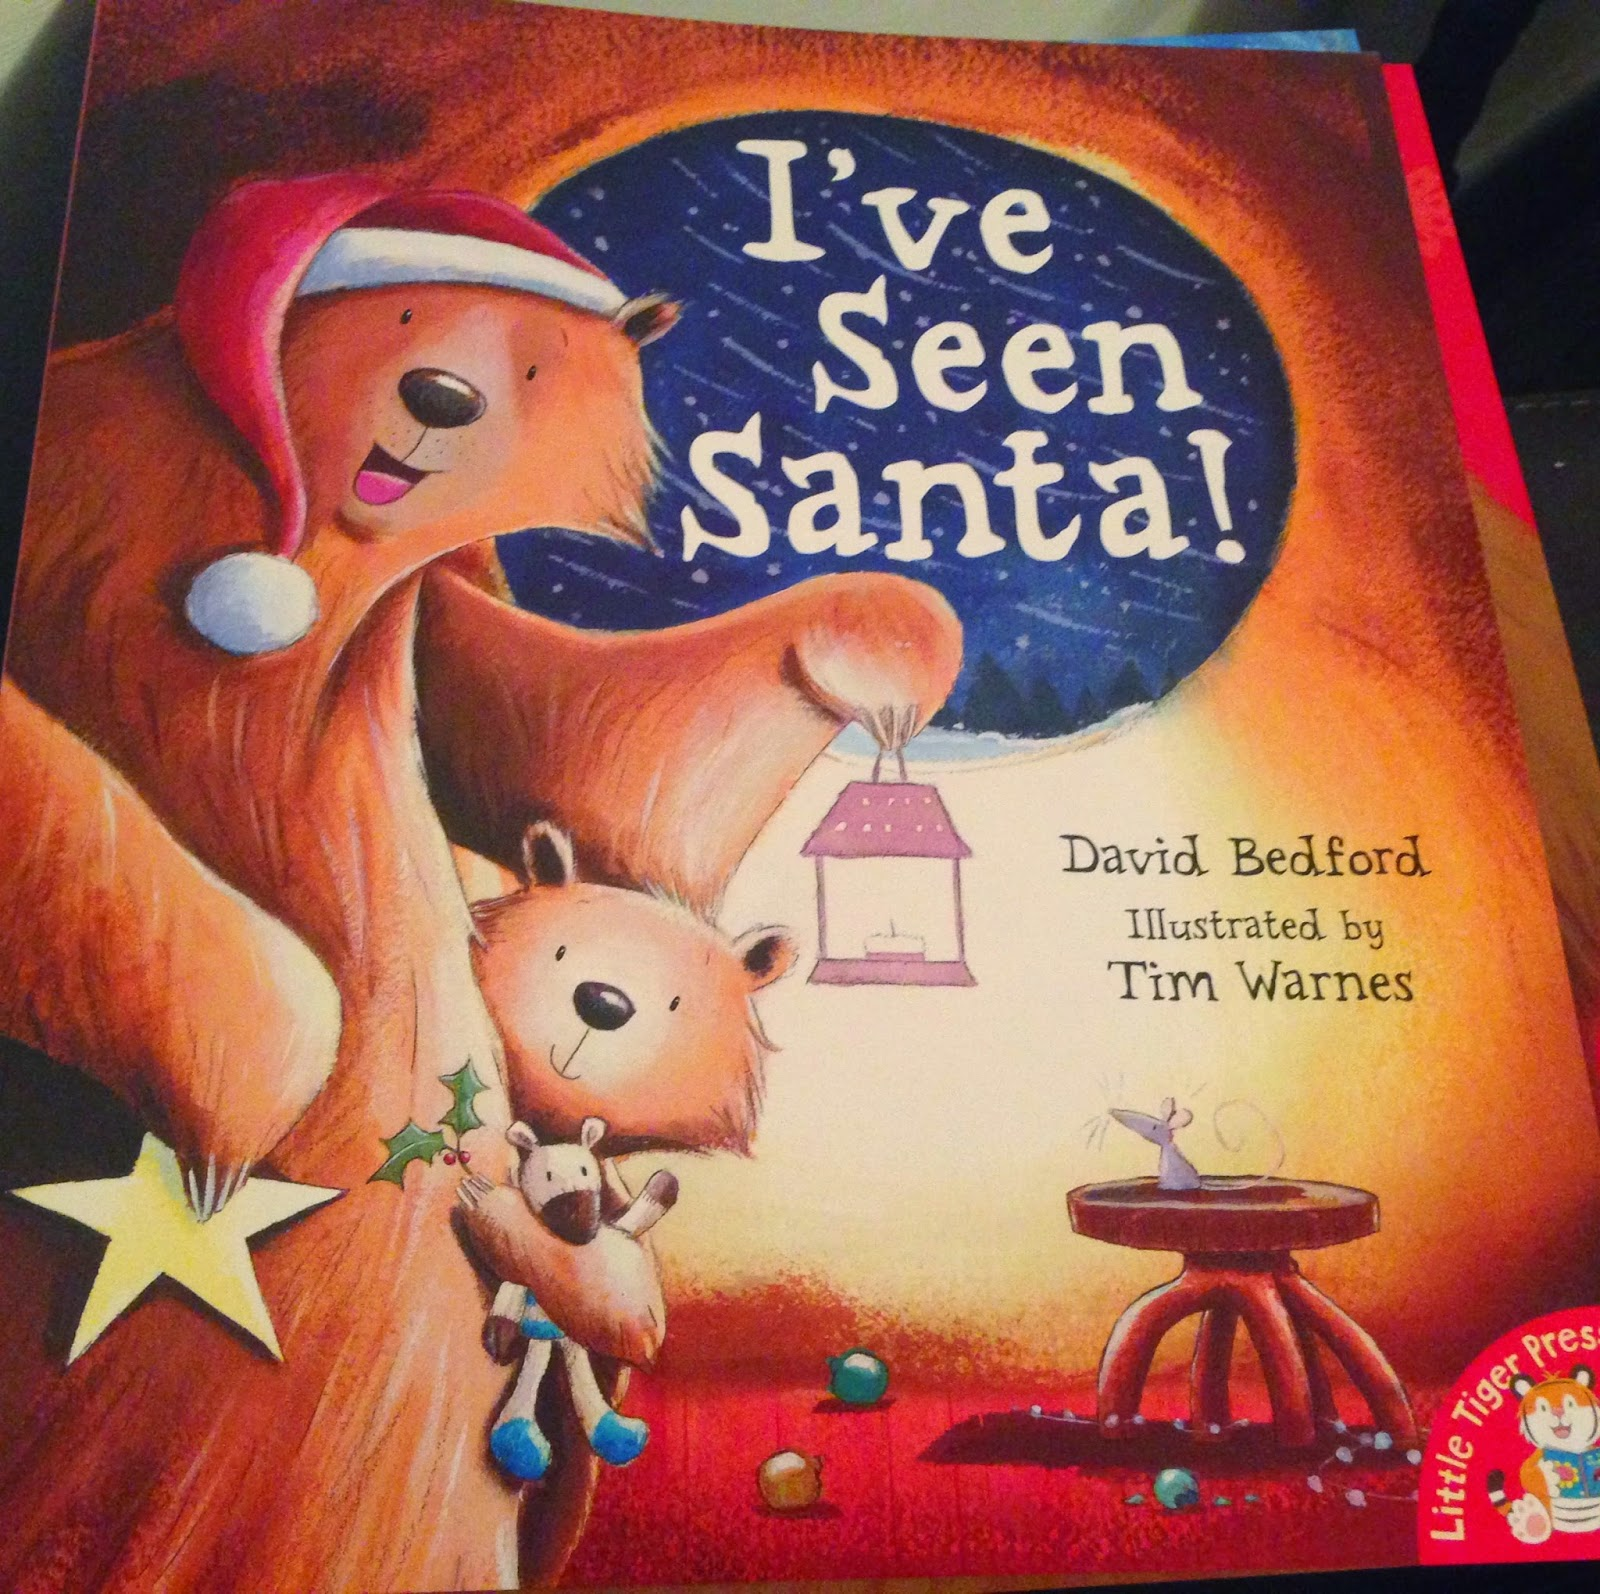 Our Christmas Book Advent tree | Ideas for the Best Children's Books to Buy this Christmas - I've seen santa